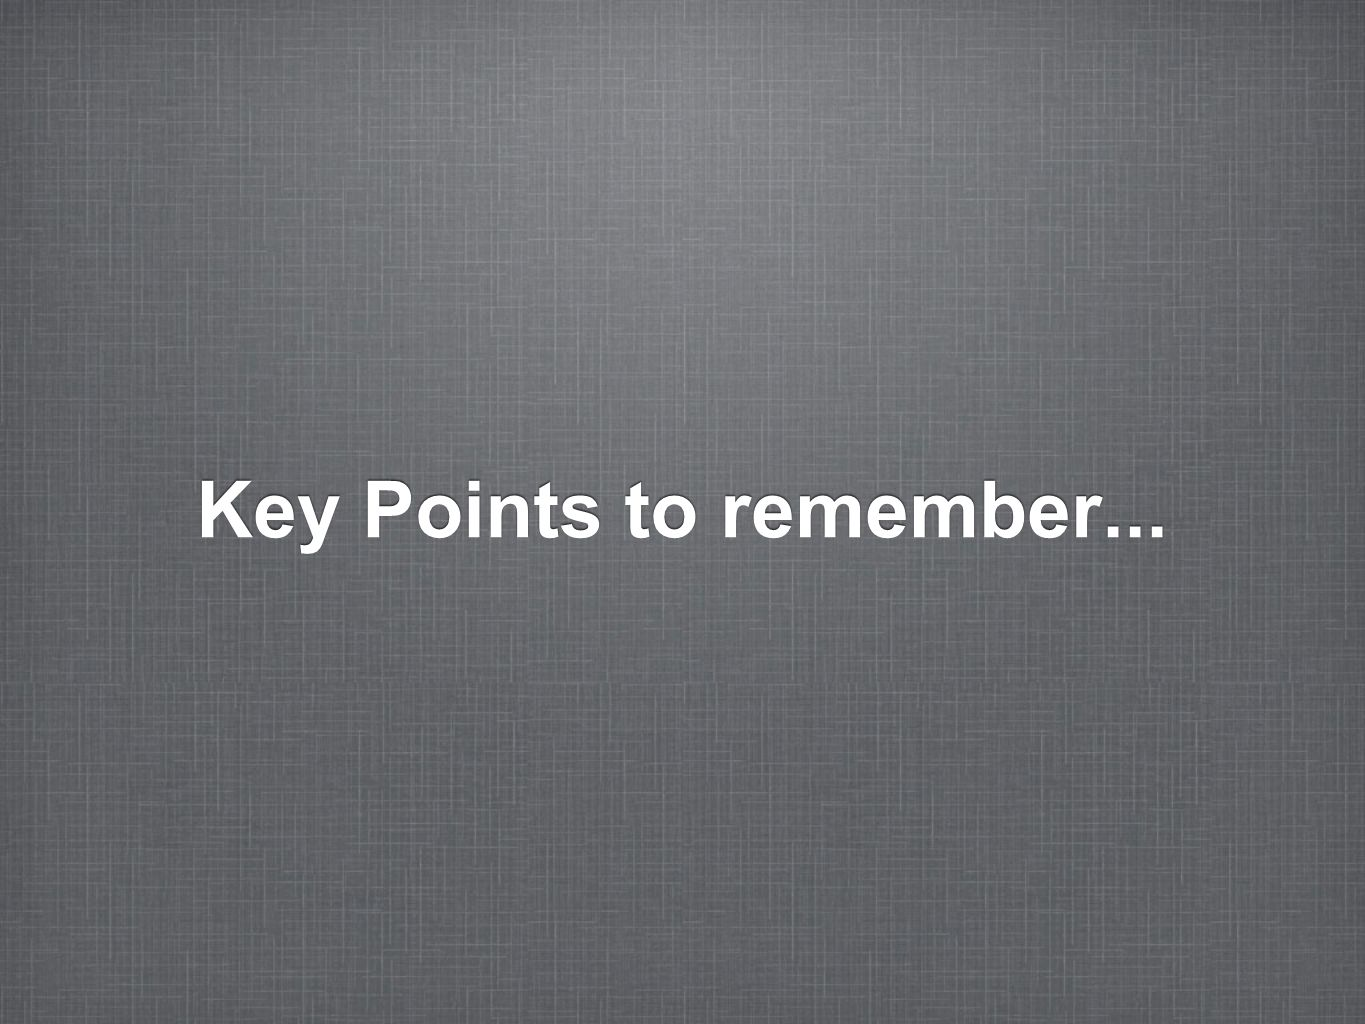 Key Points to remember...